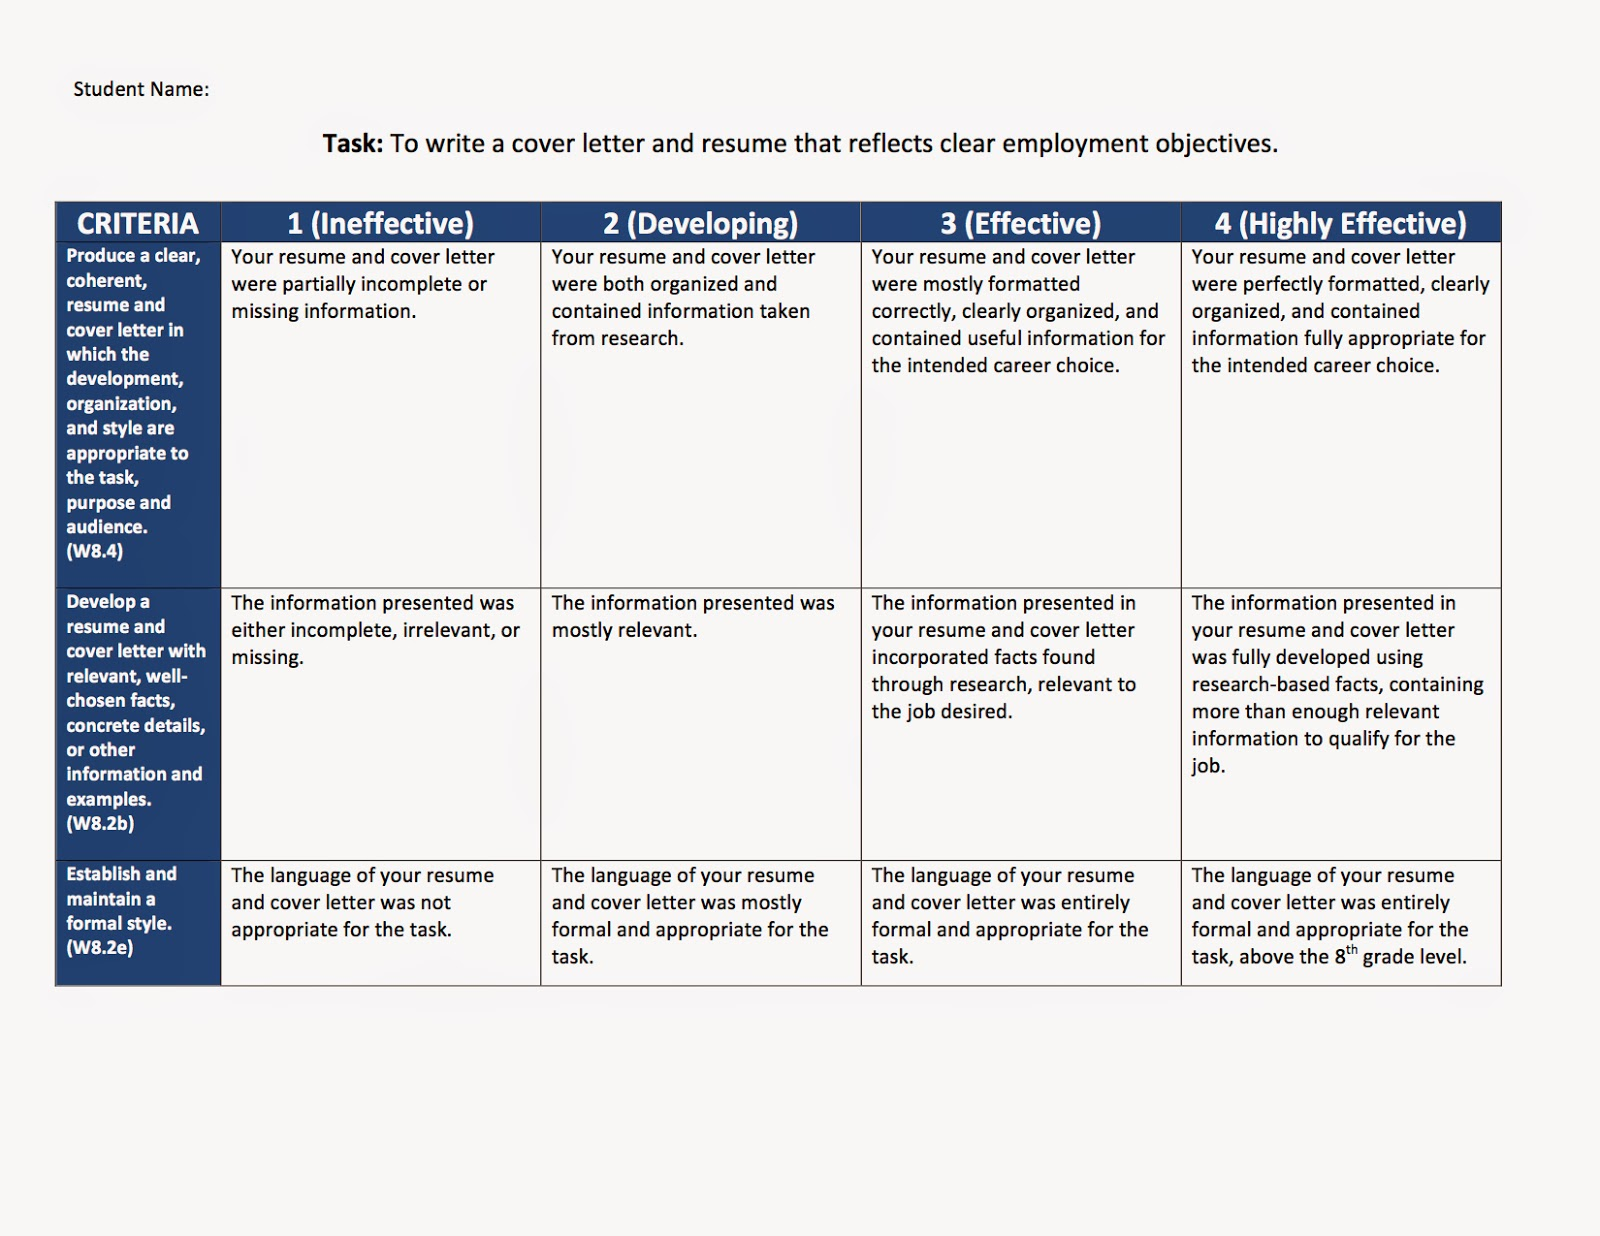 Rubric for written essay usados